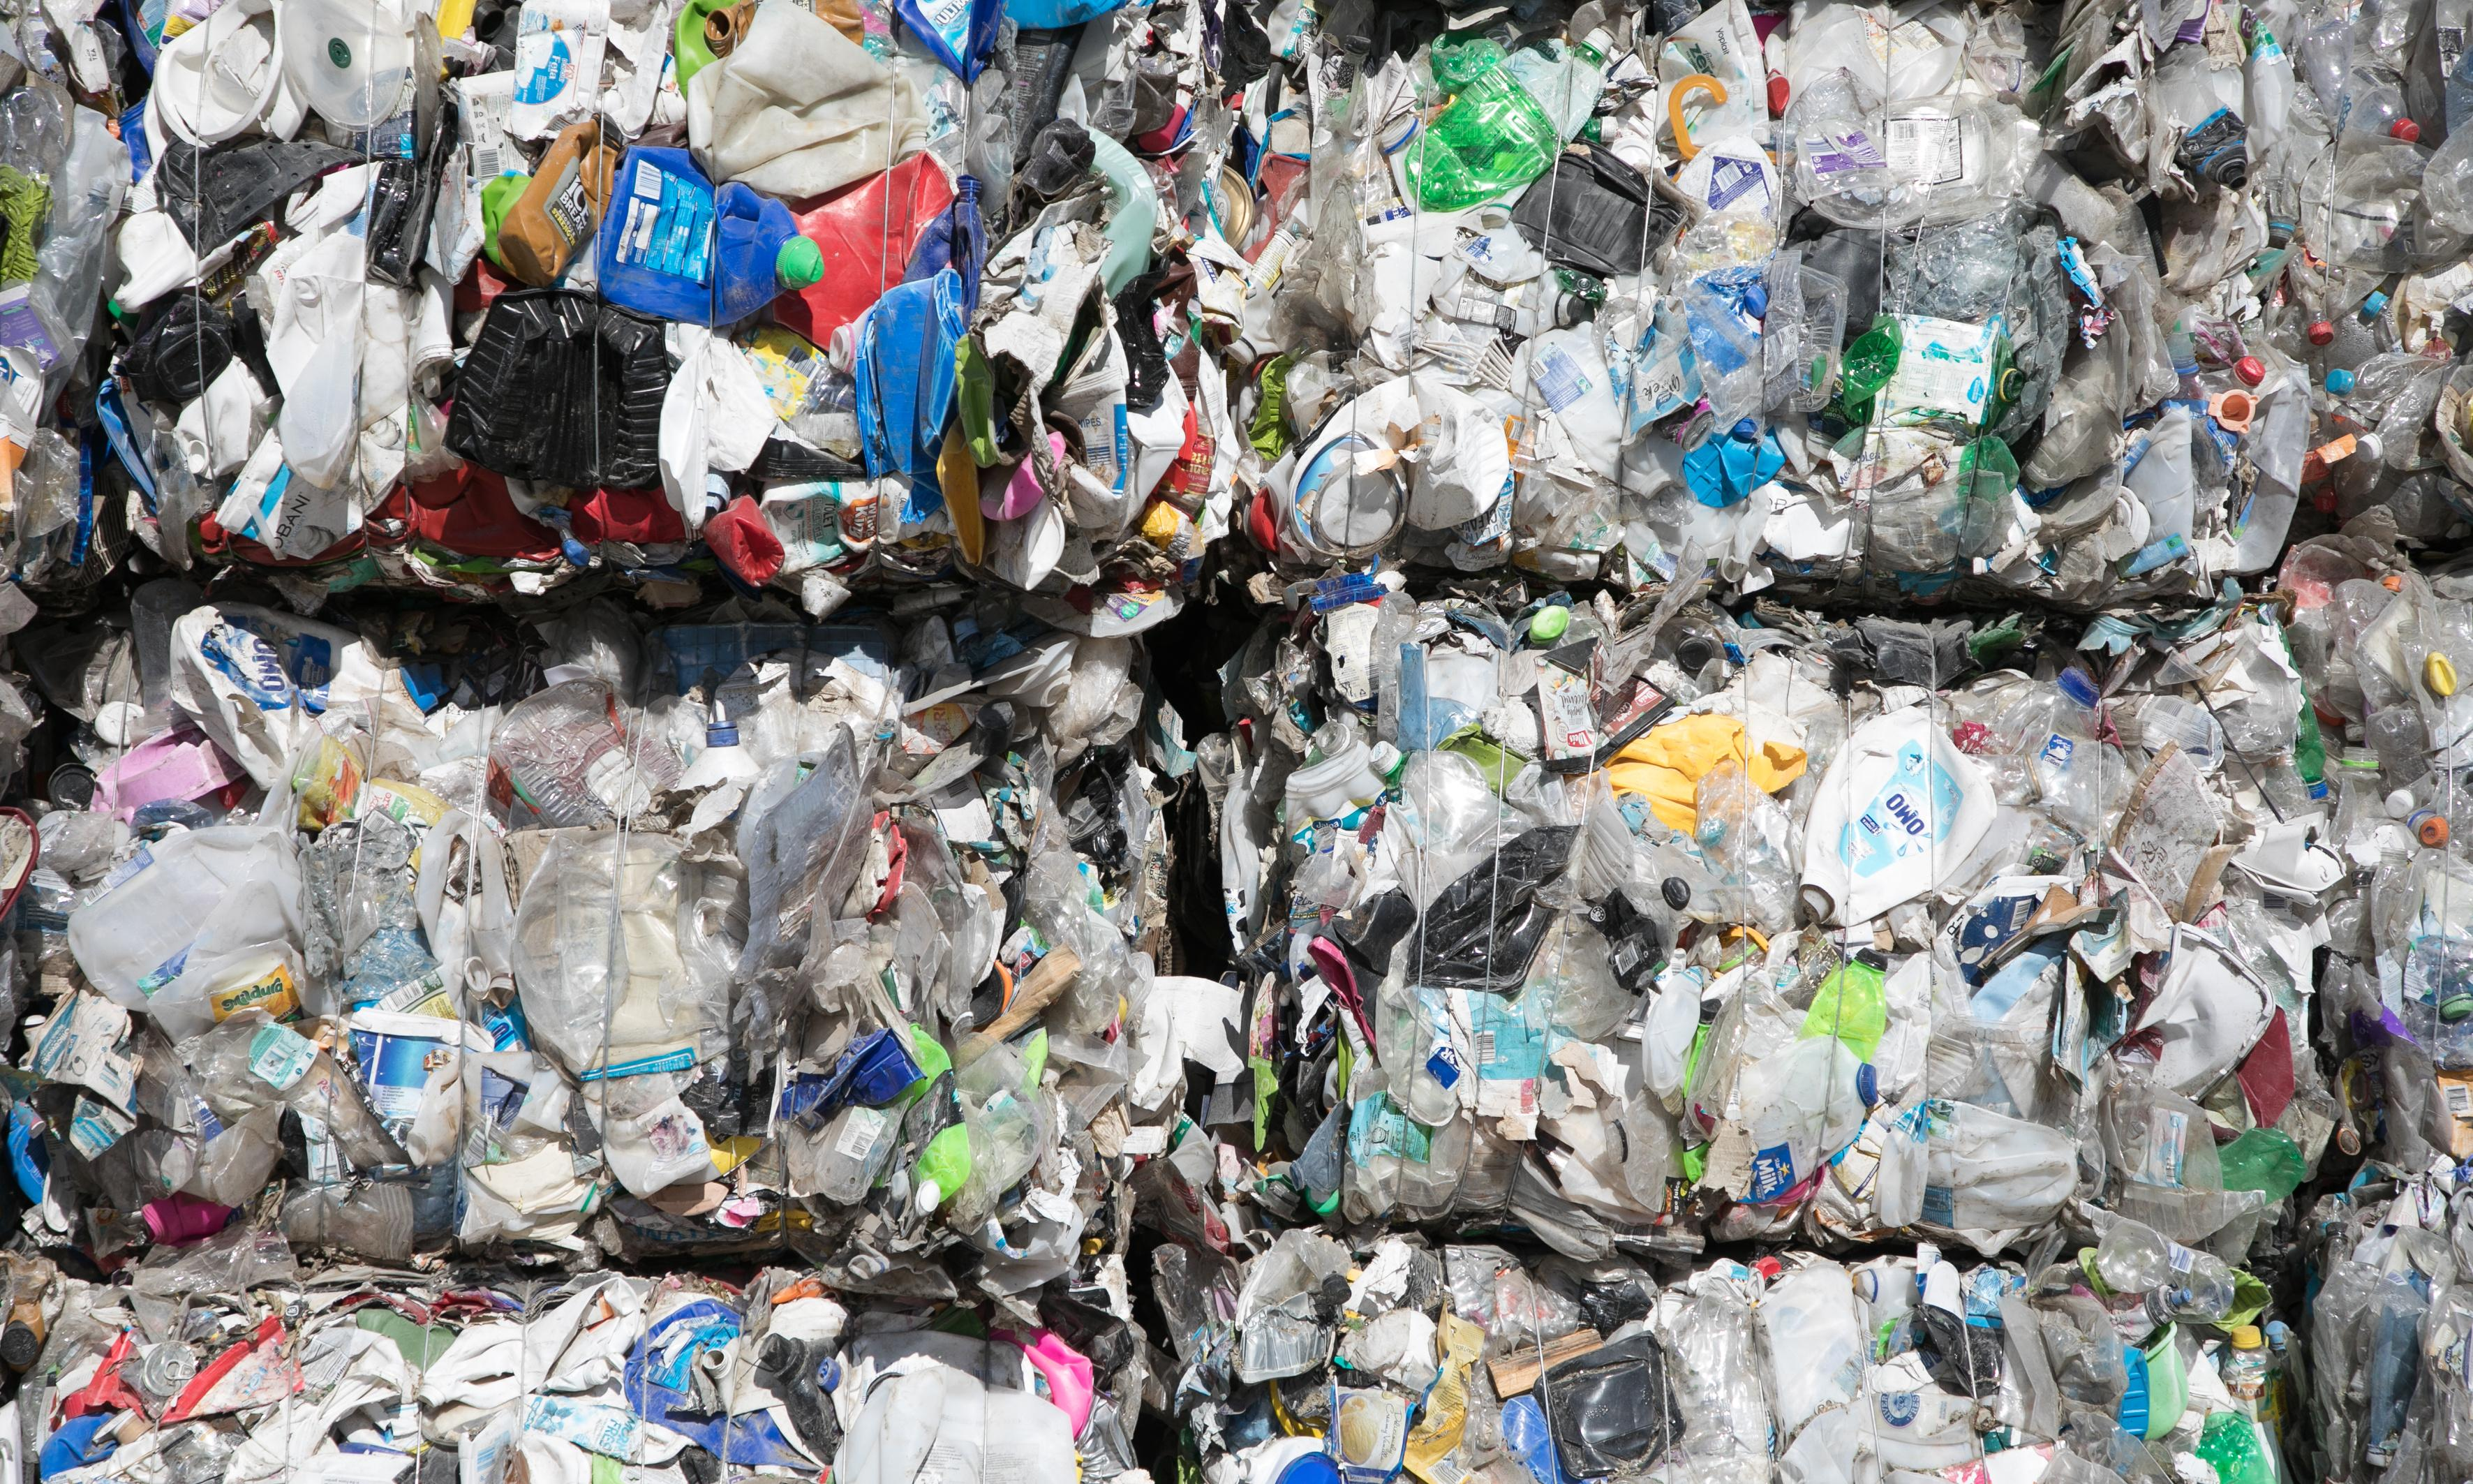 'Too much time talking': calls for NSW waste levy to fund recycling reform